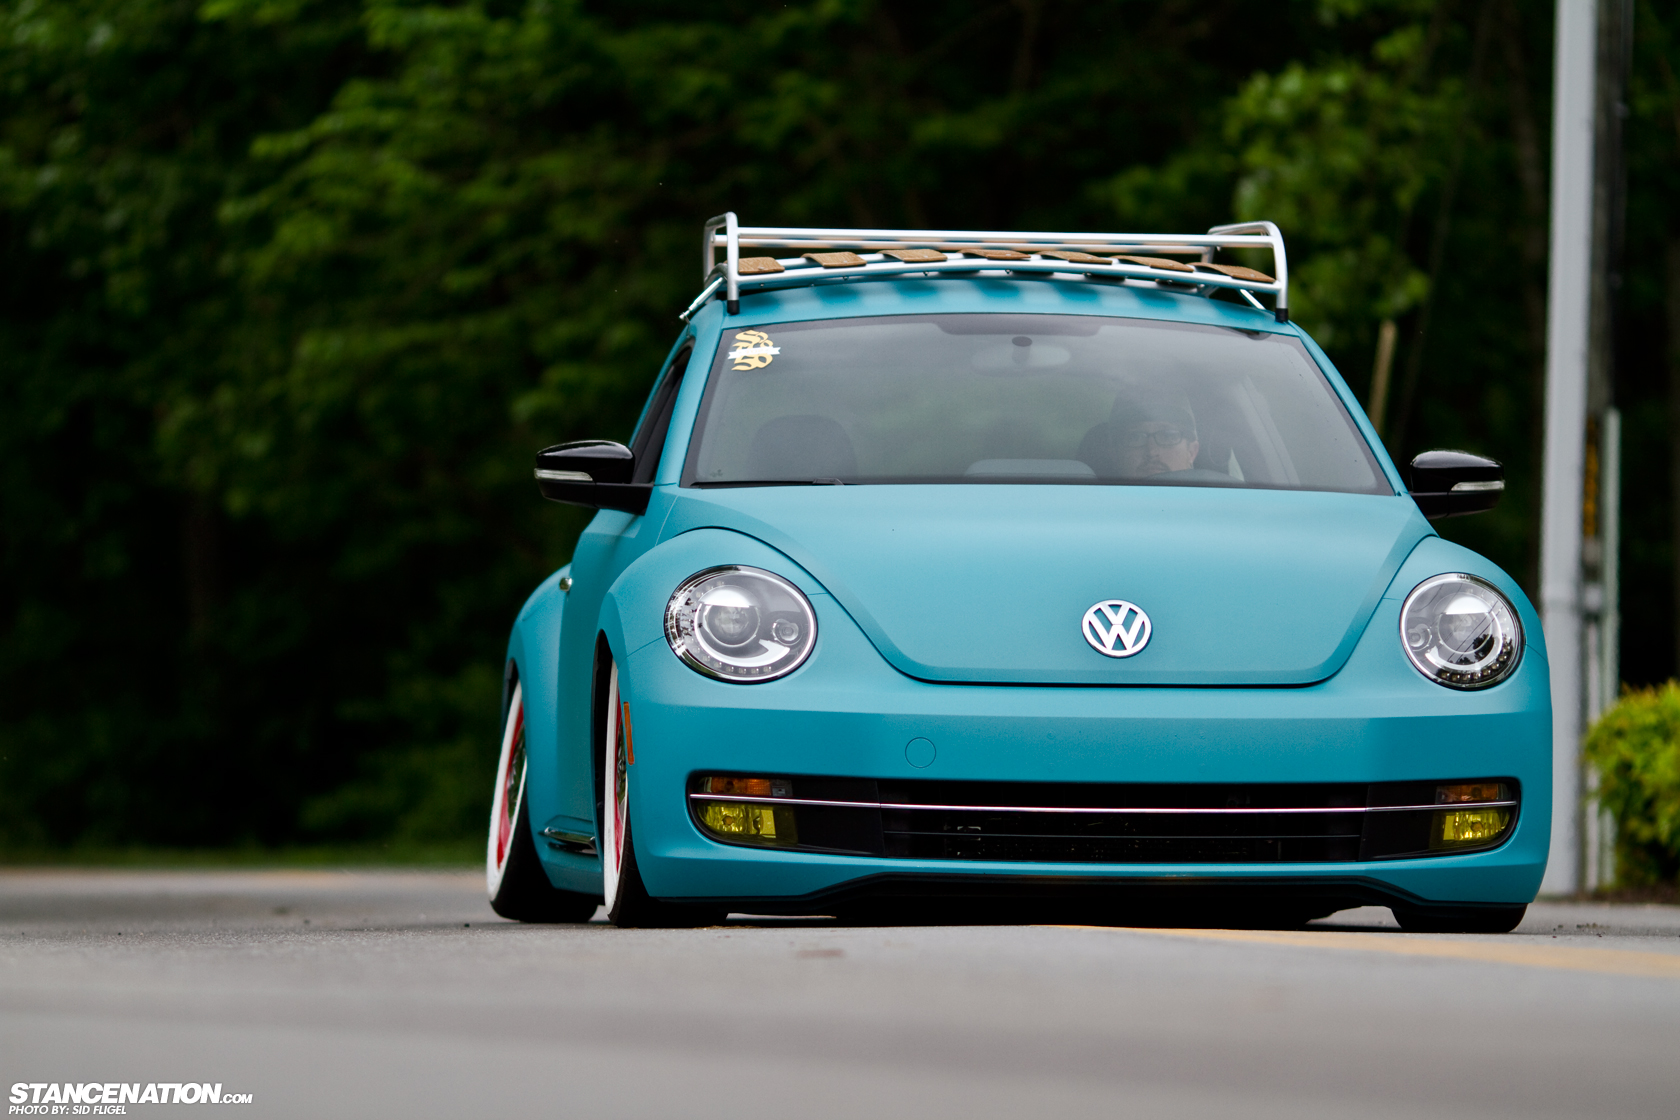 Vw new beetle camber cars voitures pinterest beetles vw beetles and cars